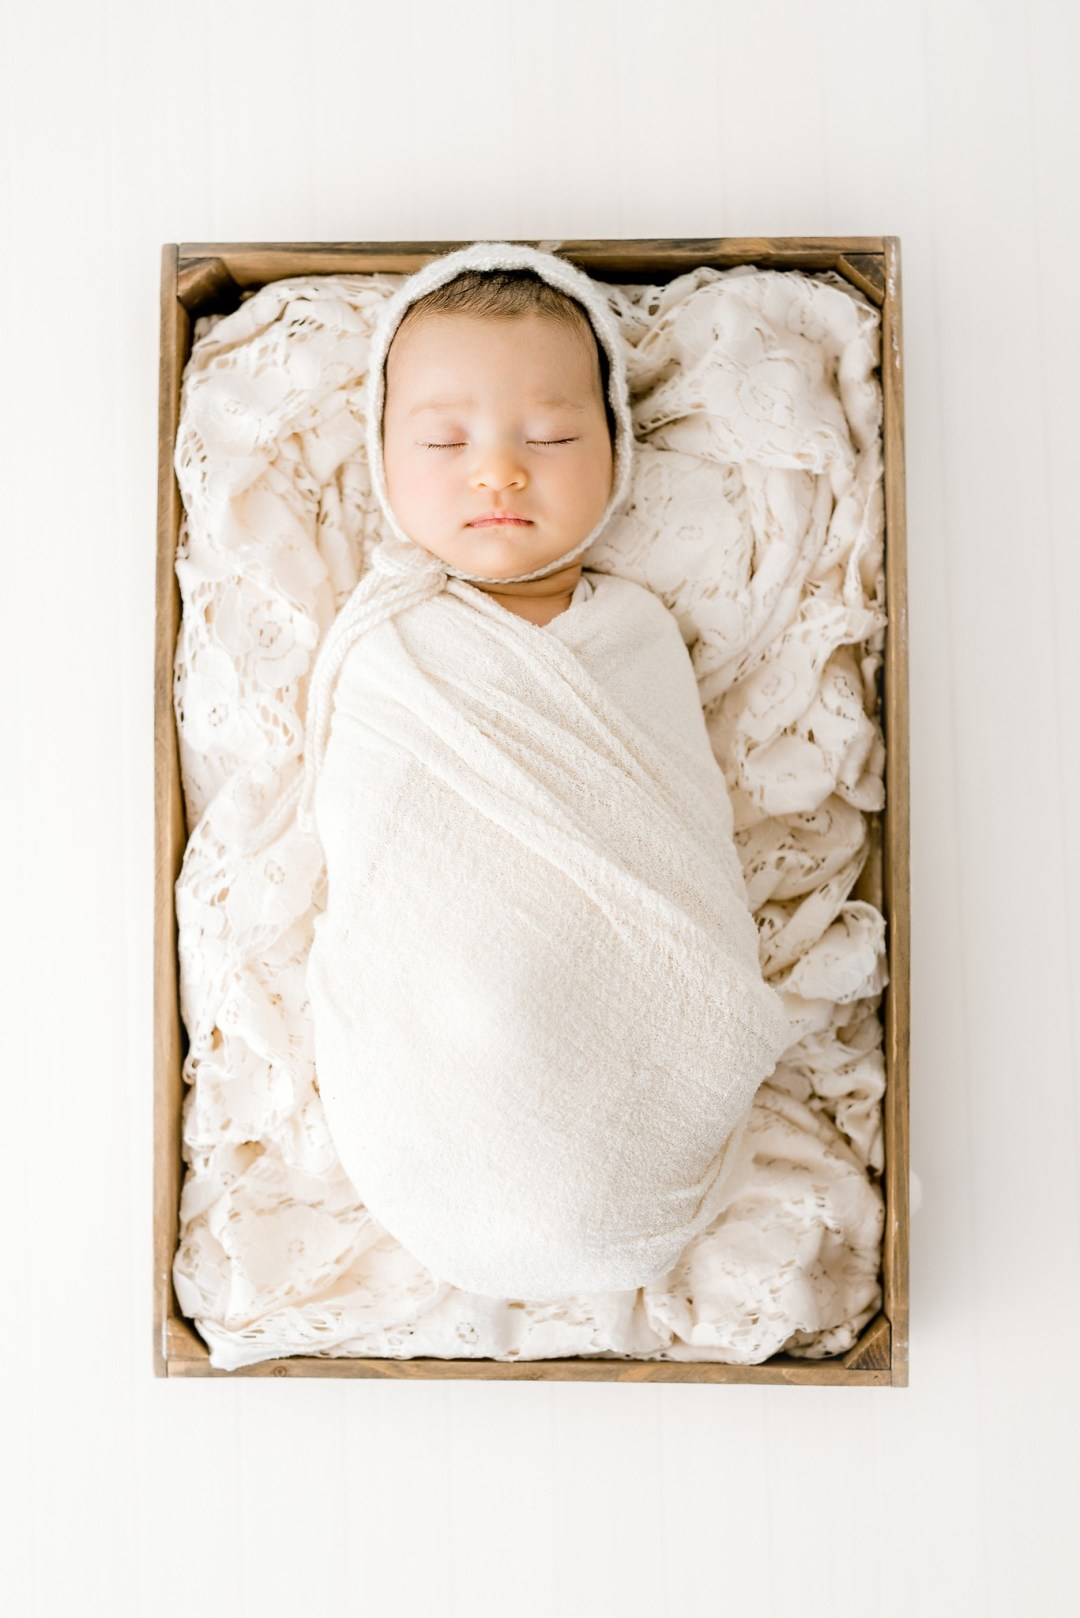 Newborn Photoshoot - Les Soufflet